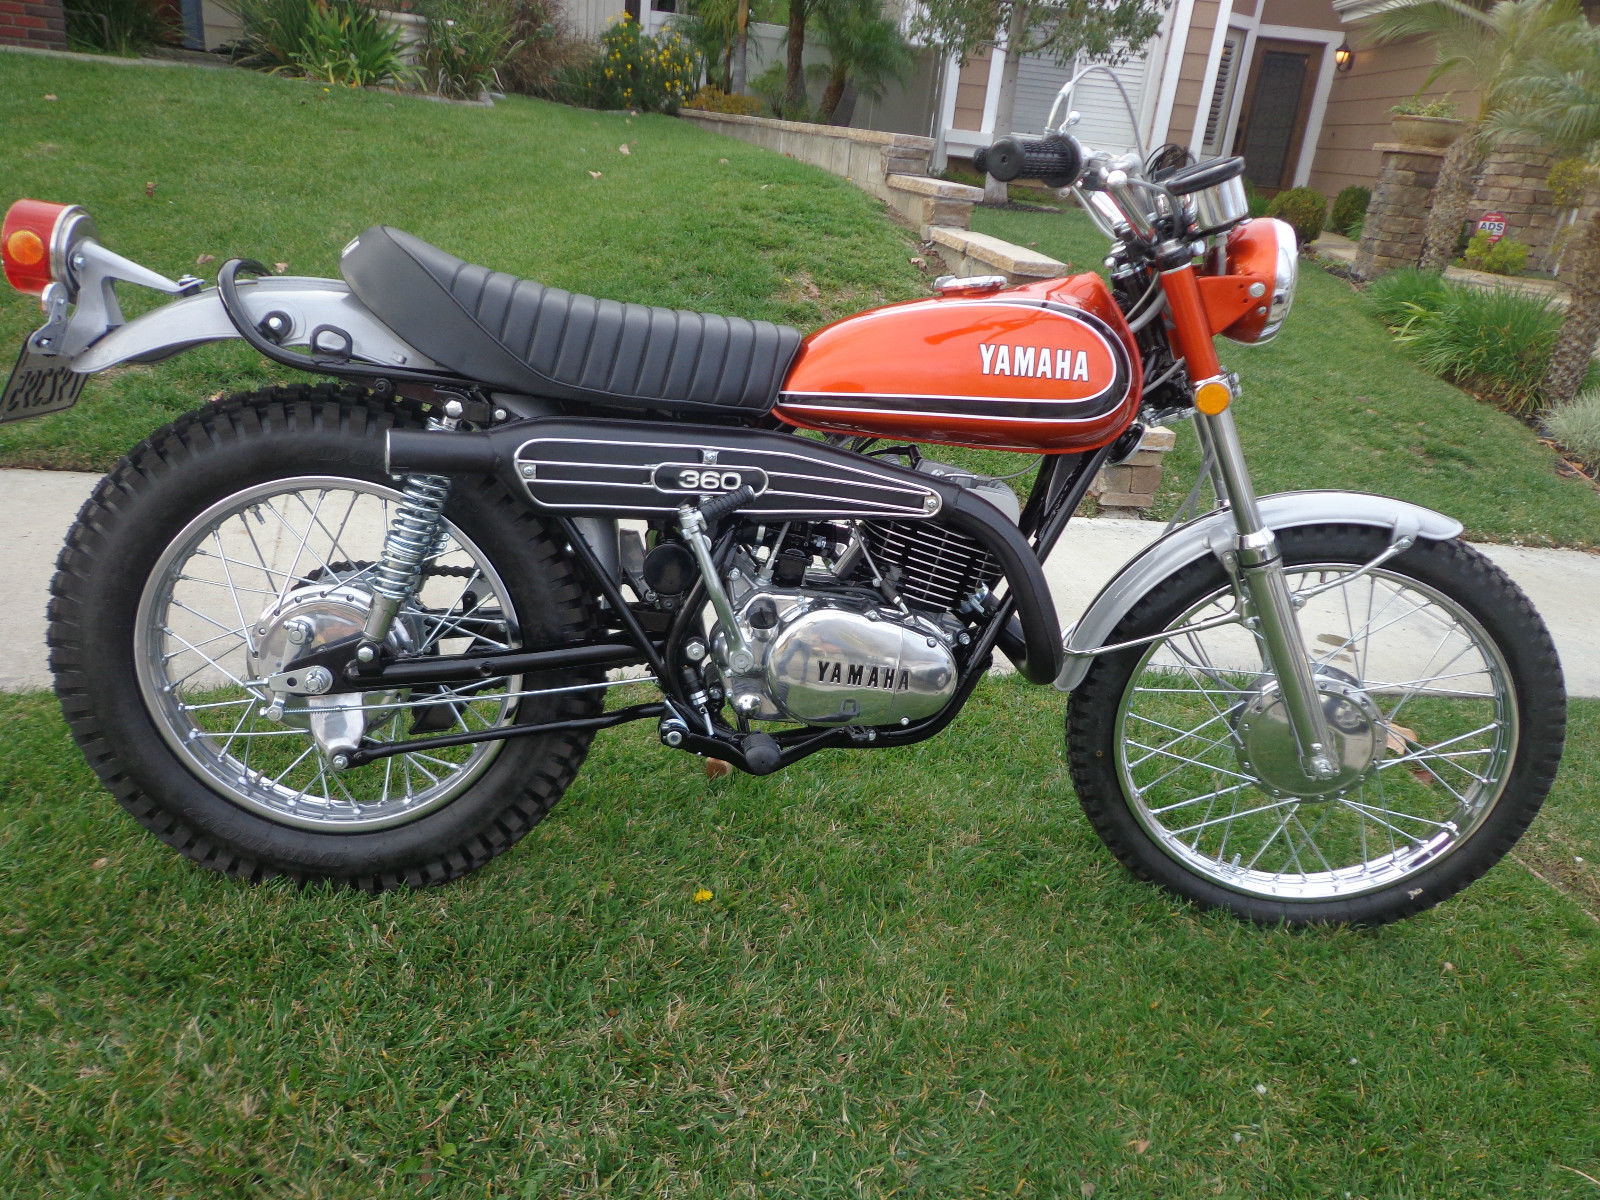 restored yamaha rt3 360 enduro 1973 photographs at classic bikes restored bikes restored. Black Bedroom Furniture Sets. Home Design Ideas